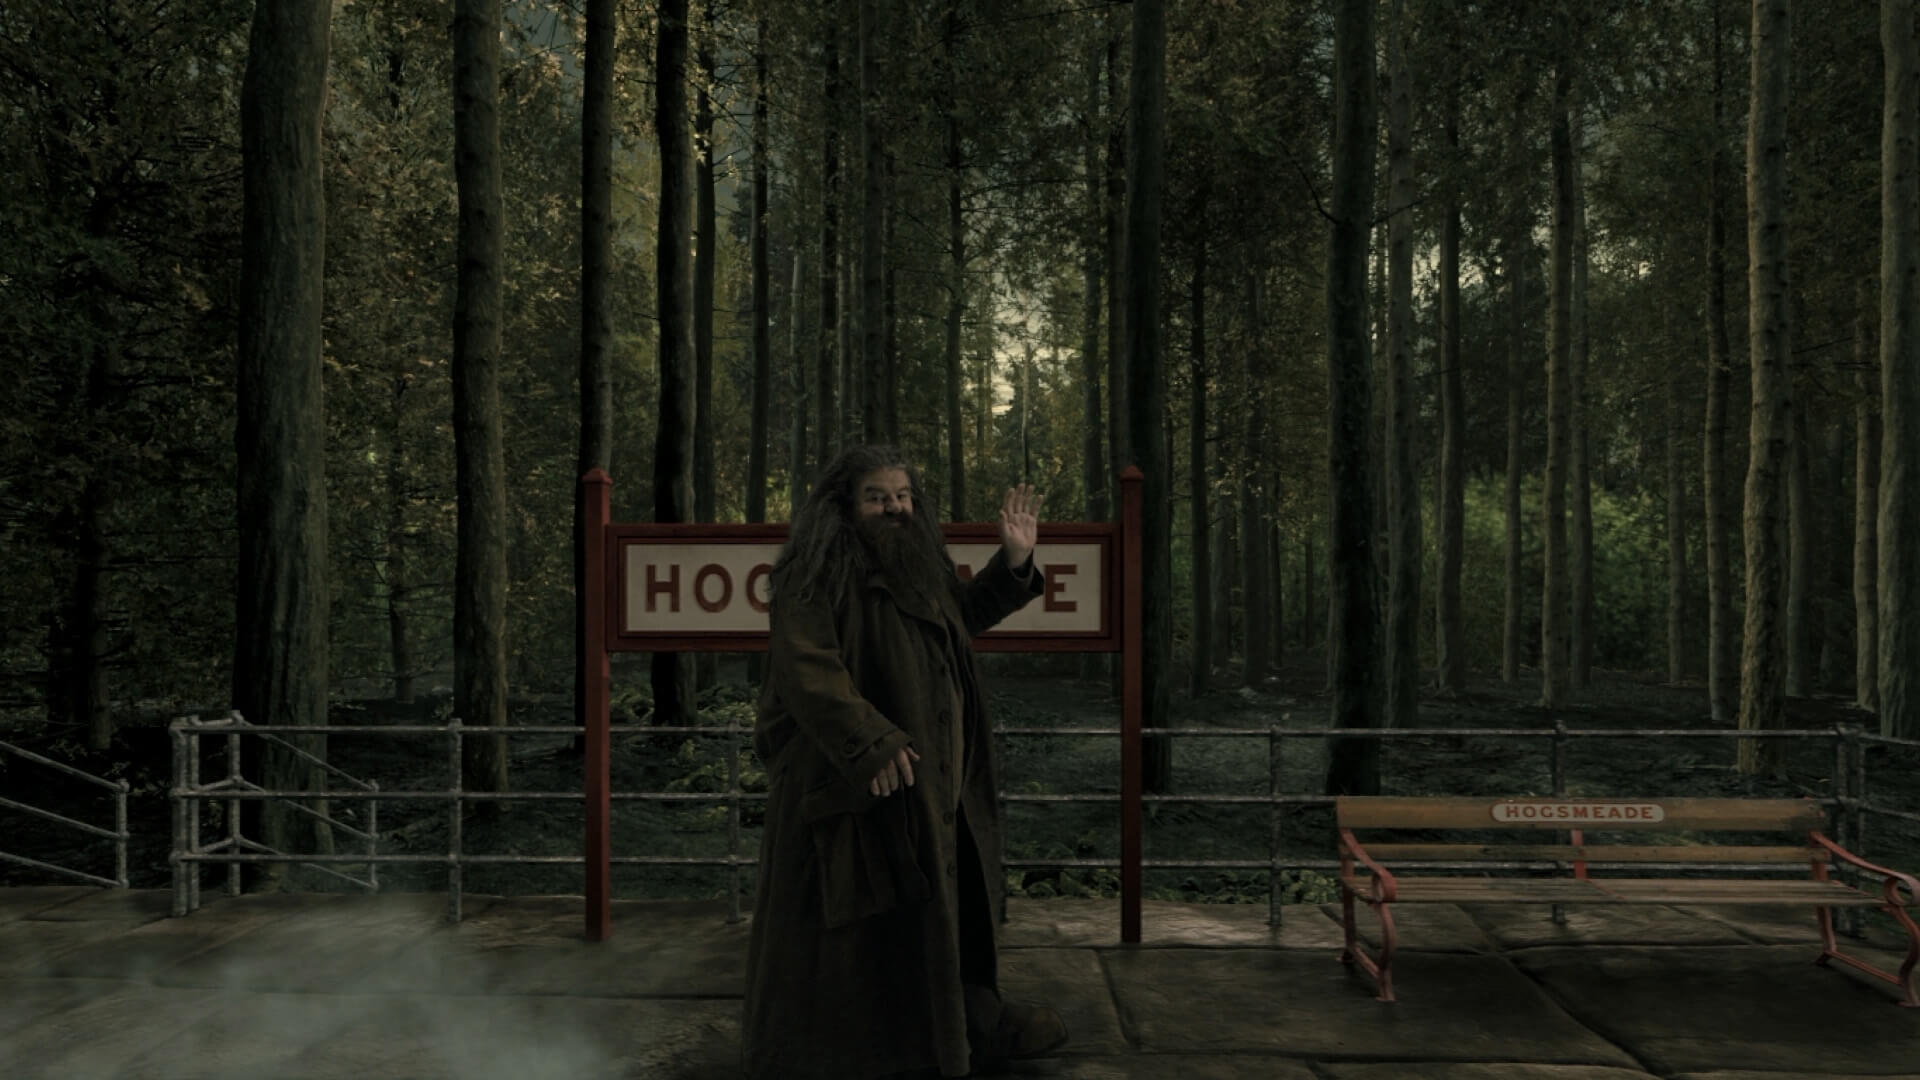 Hogwarts Express details reveal realistic visuals with ...